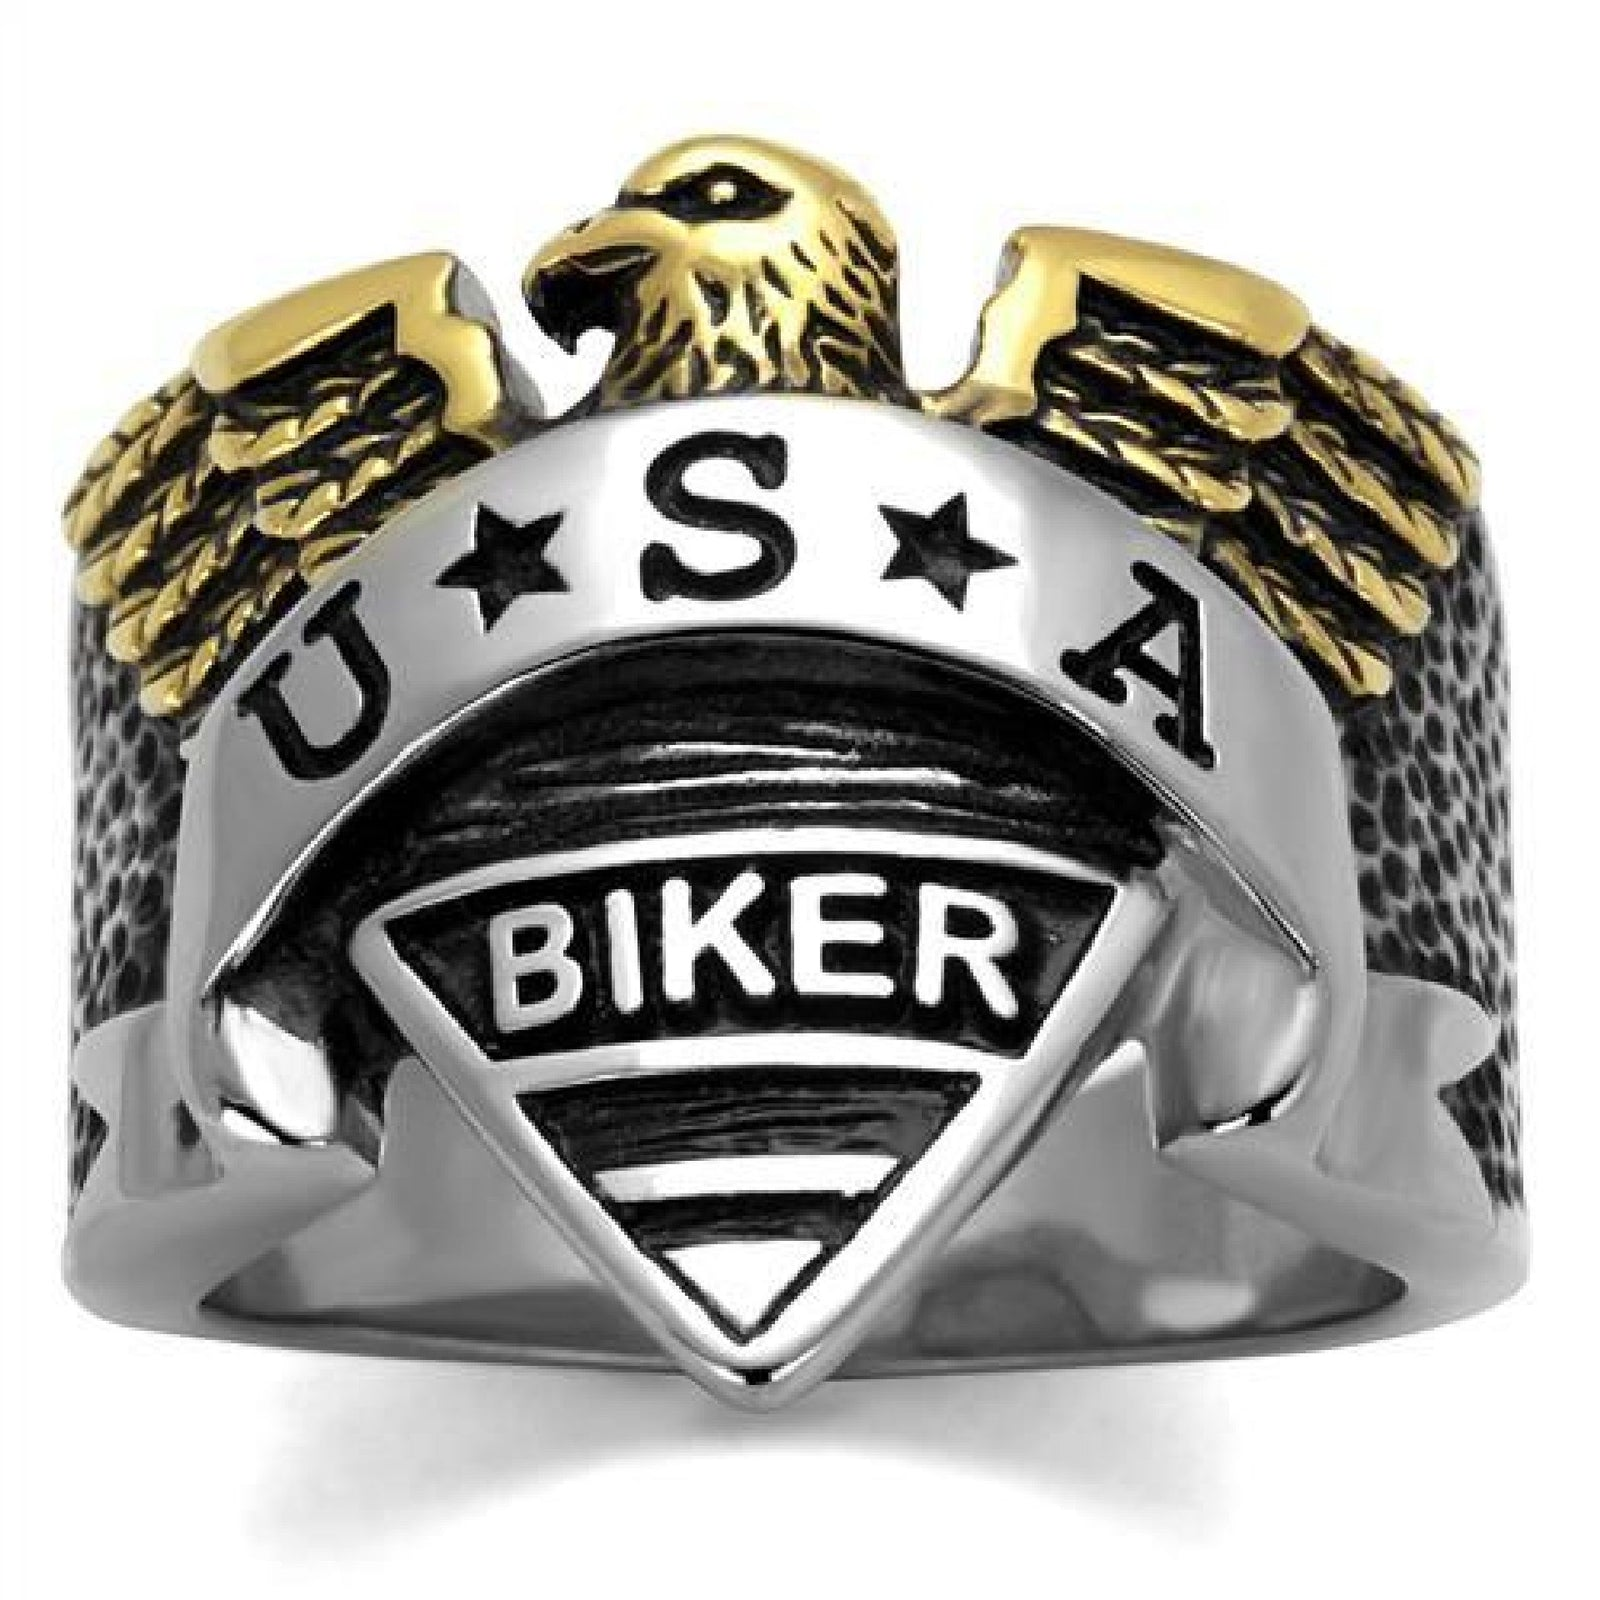 Stainless Steel Two-Tone Men's USA Biker Ring